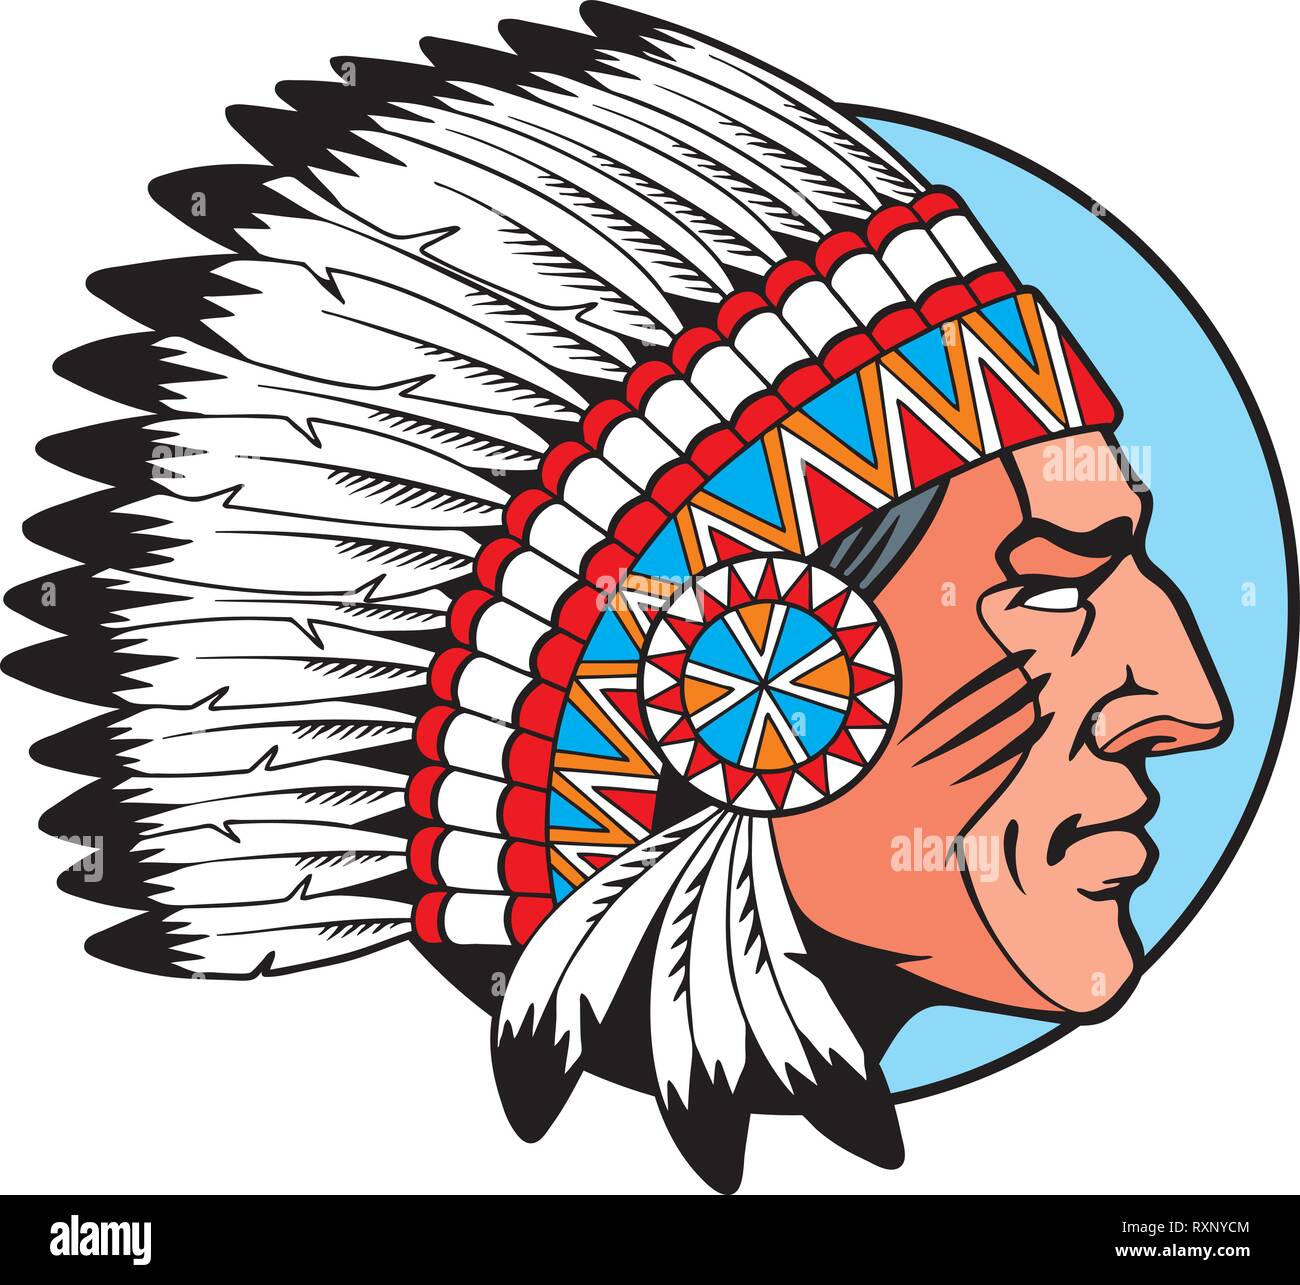 American Indian Chief head profile. Comic style vector illustration. - Stock Image